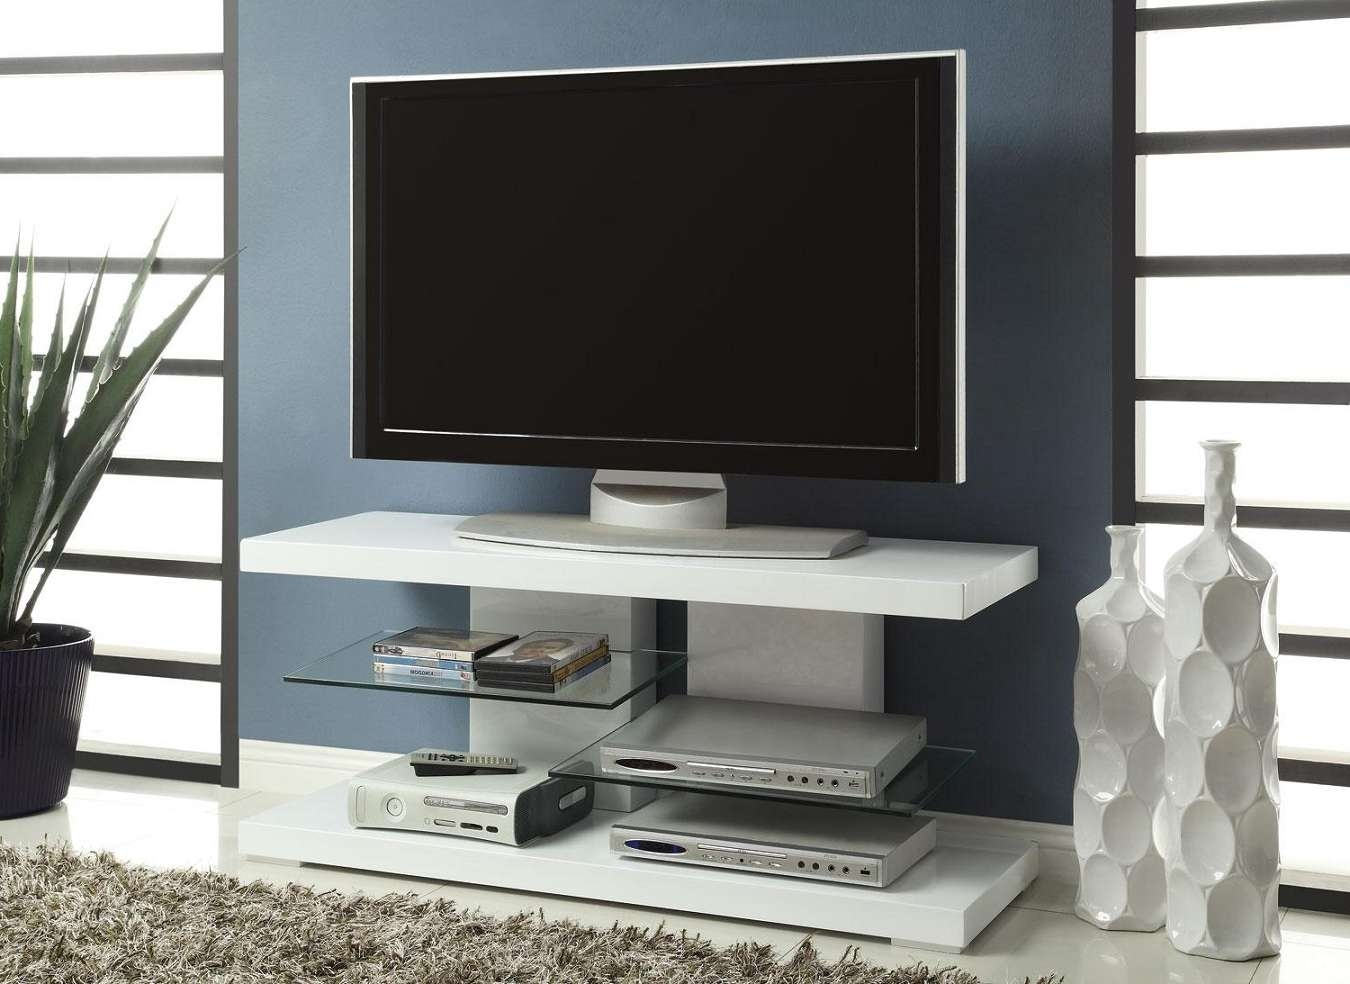 White Painted Plywood Flat Screen Tv Stand With Tempered Glass Regarding Contemporary Tv Stands For Flat Screens (View 8 of 15)